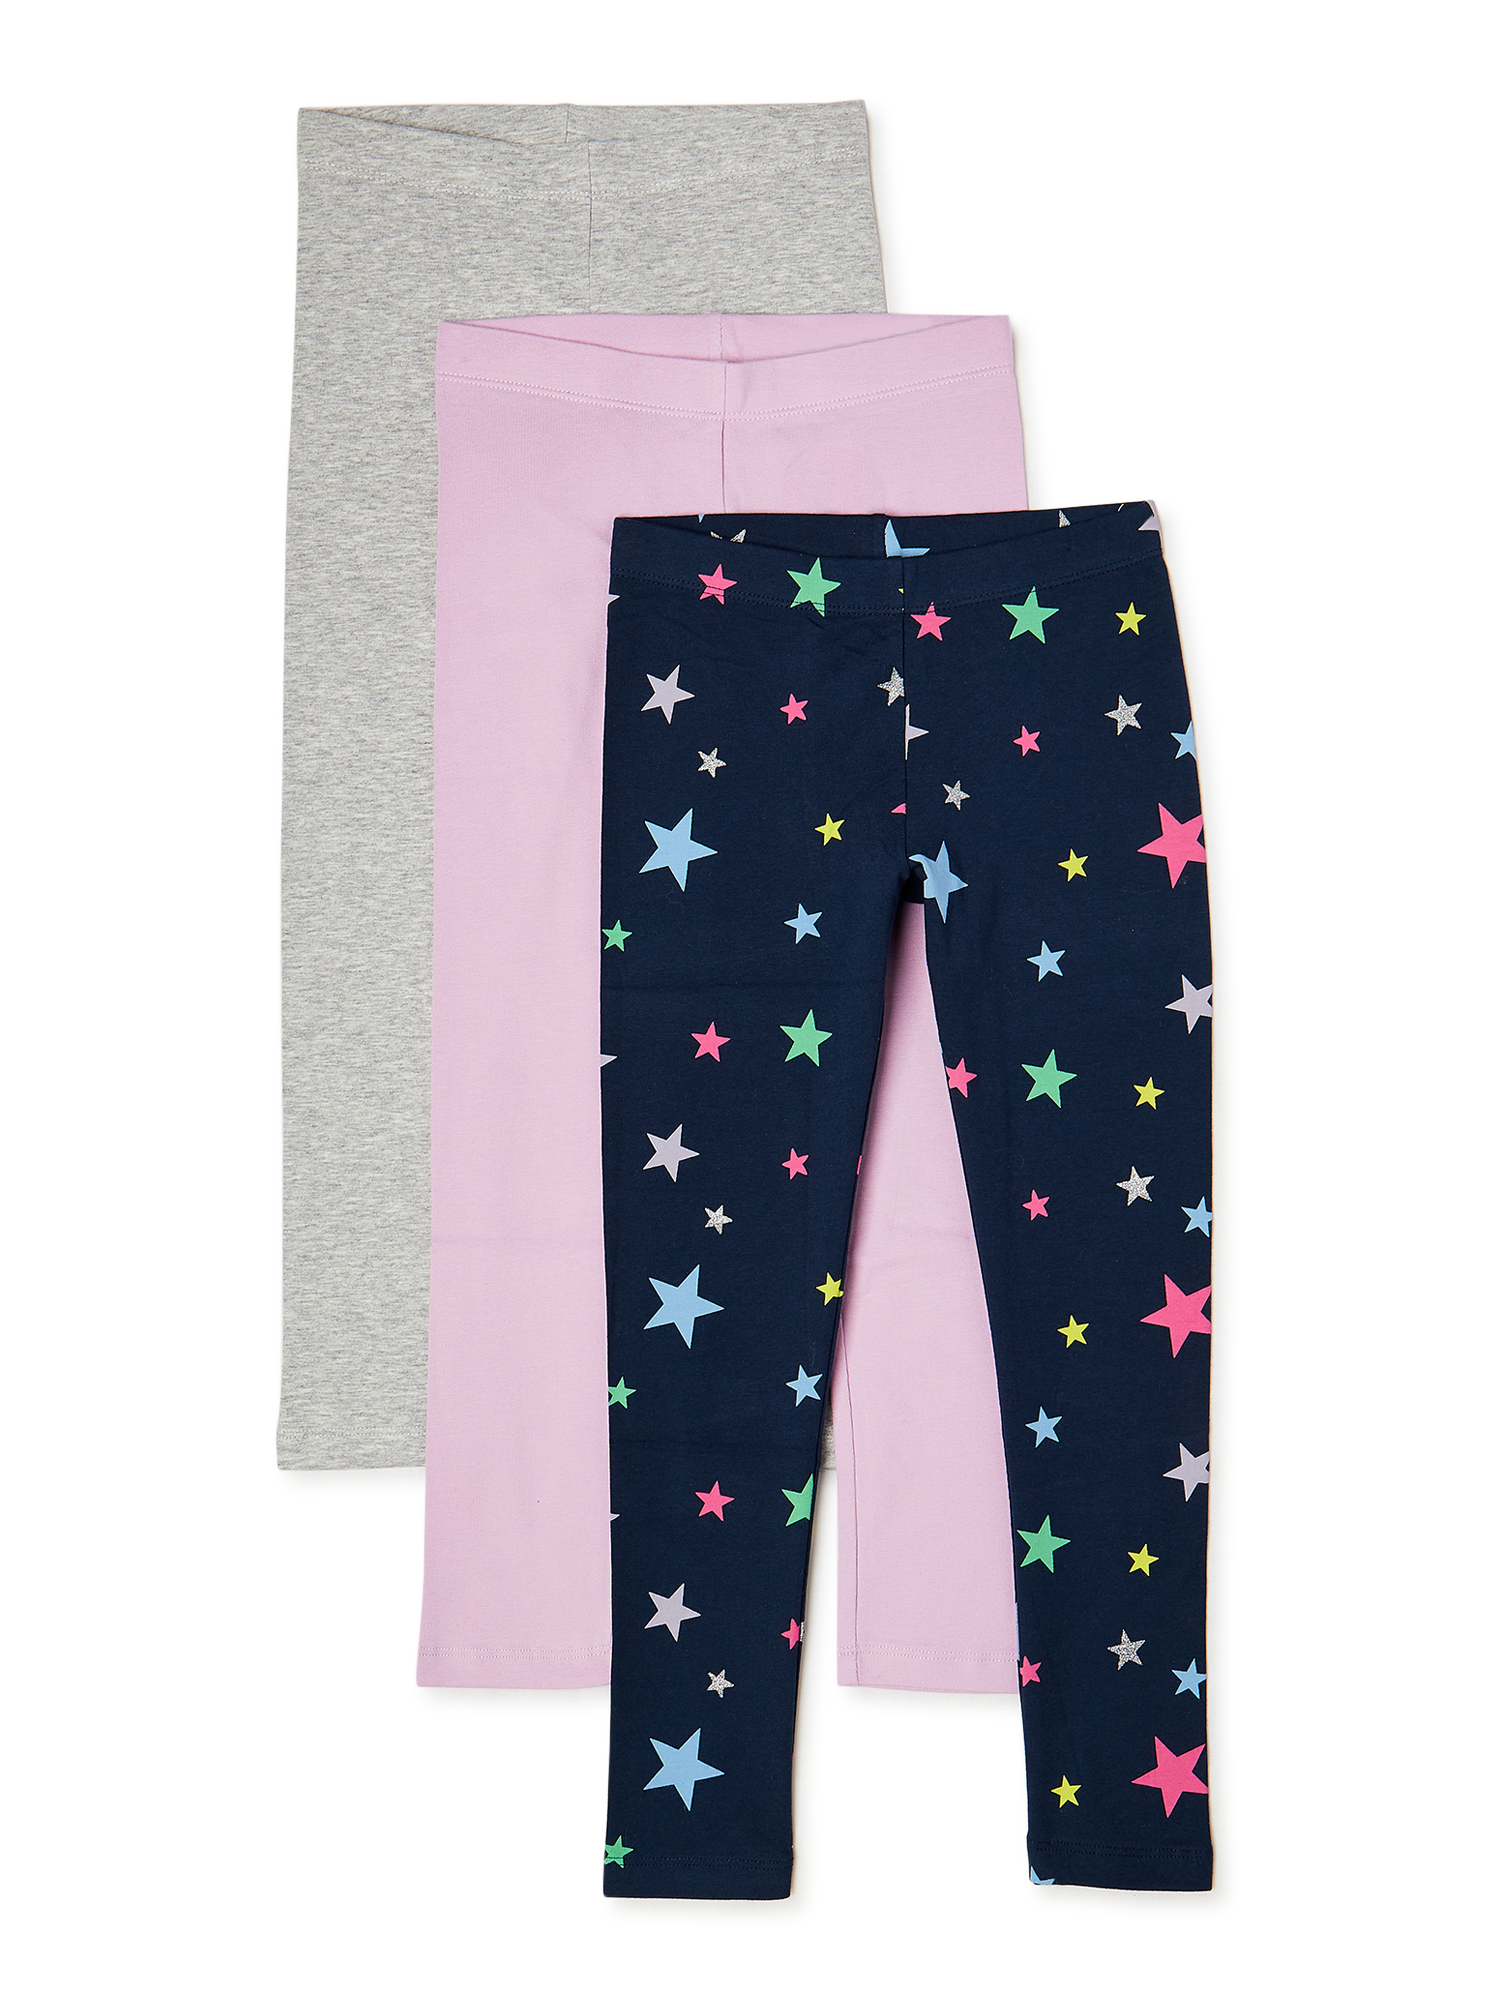 Girls Kids Toddlers 2 Pack Peppa Pig Tights Purple Grey New All In One Twin Pack